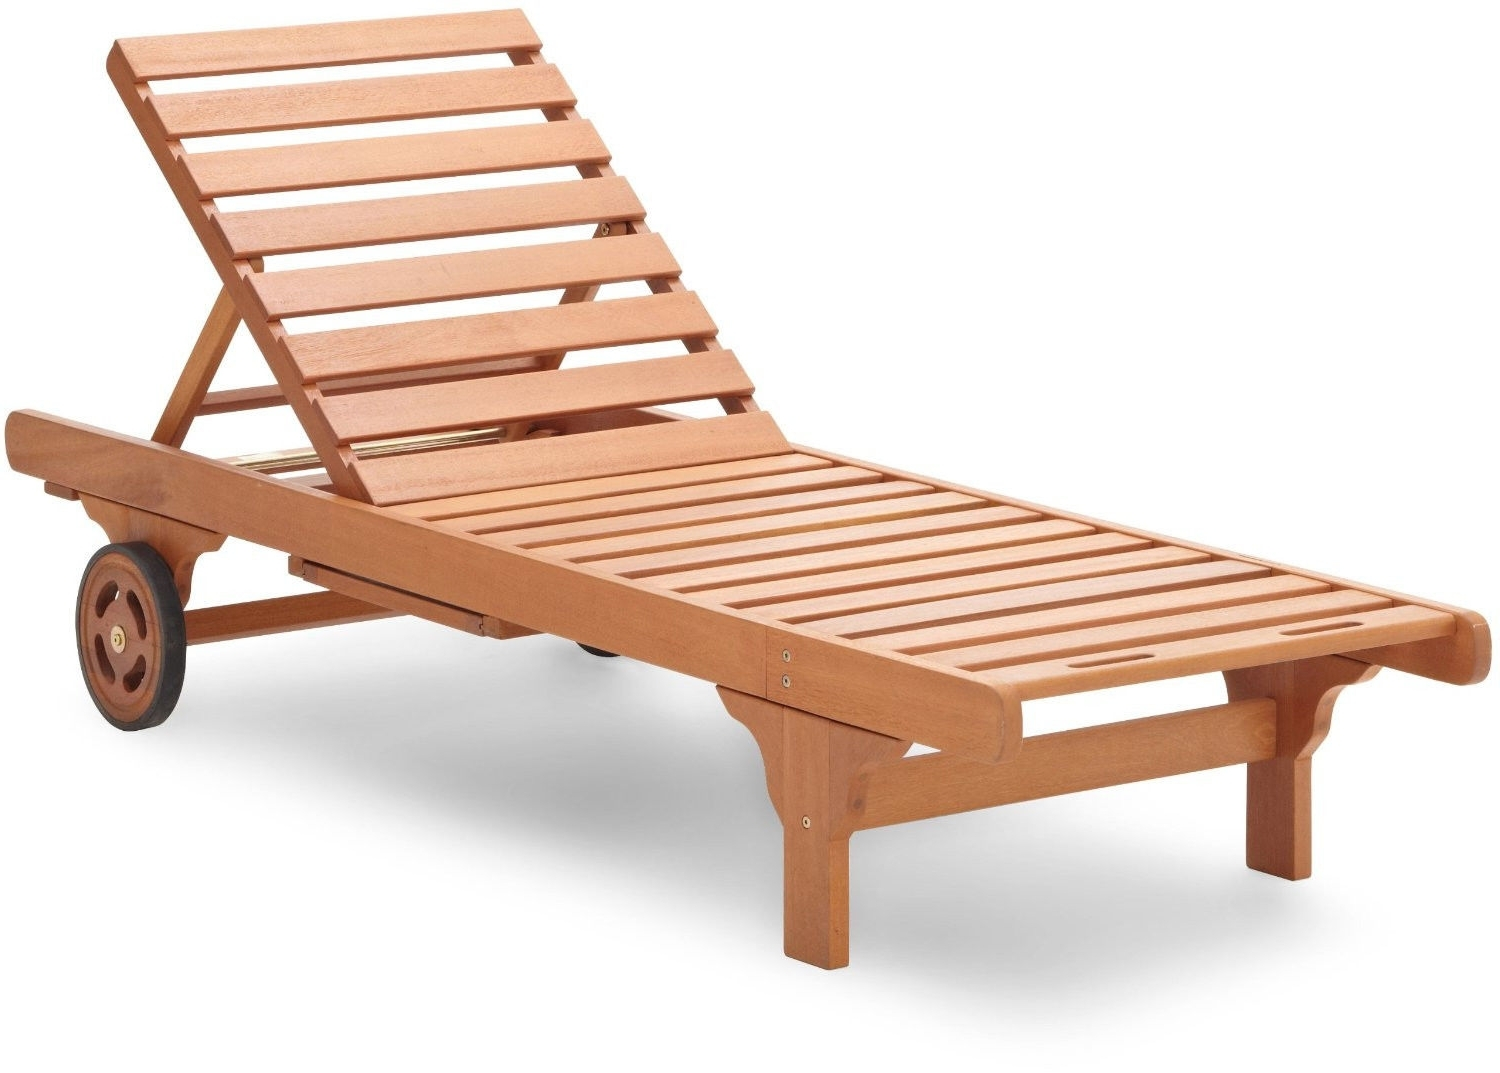 Diy Outdoor Chaise Lounge Chairs Intended For Most Current Wooden Chaise Lounge – Patio Chaise Lounge Ikea, Outdoor Chaise (View 5 of 15)